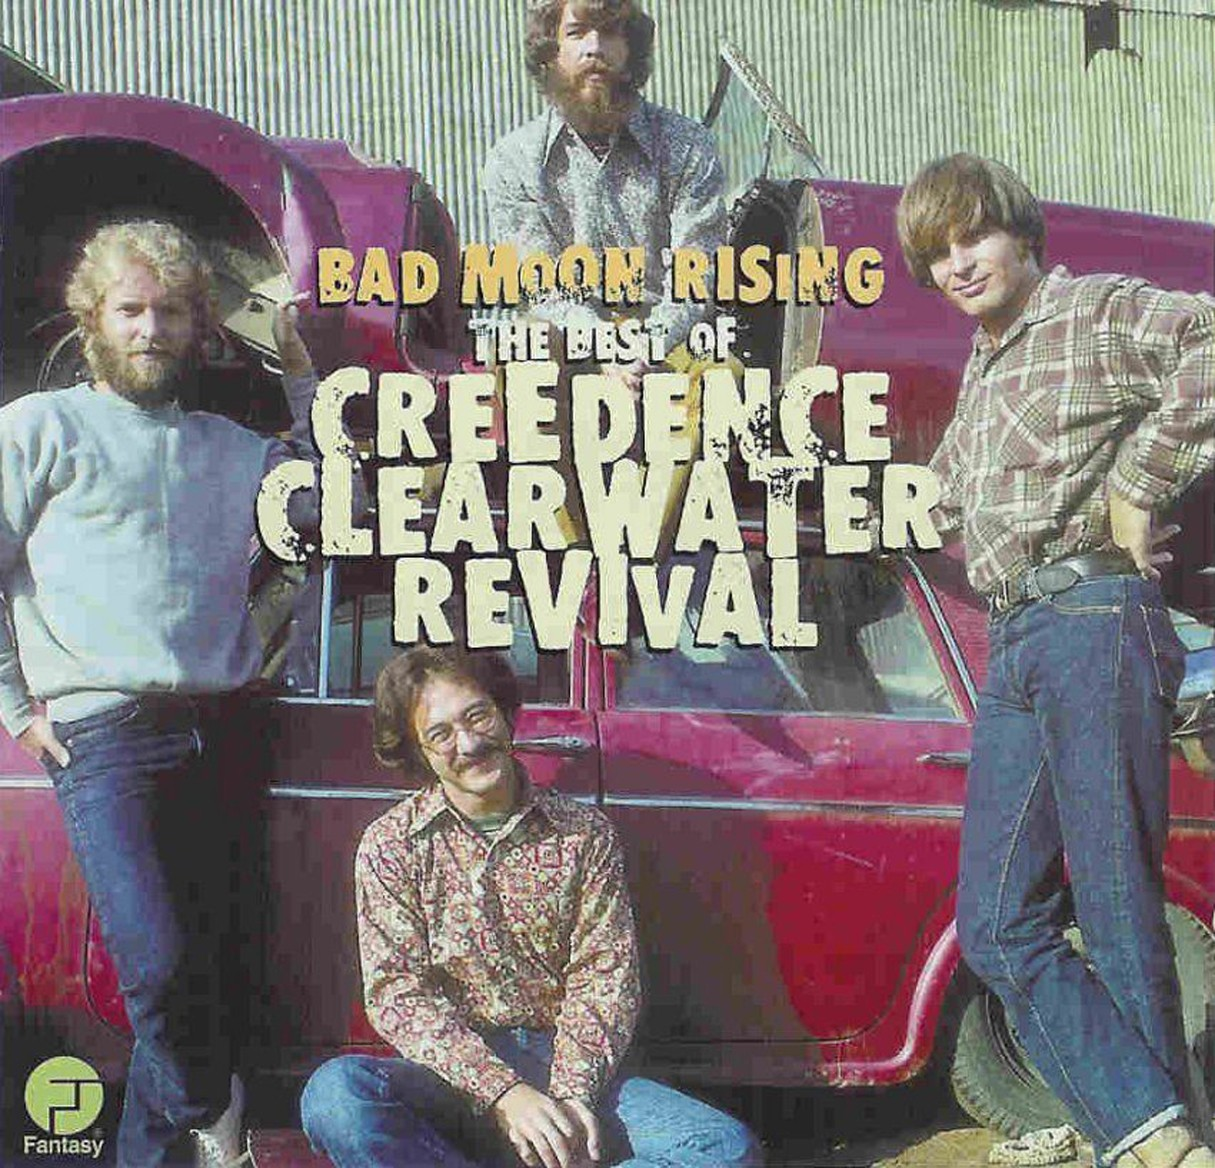 Review Of: Creedence Clearwater Revival (CCR)